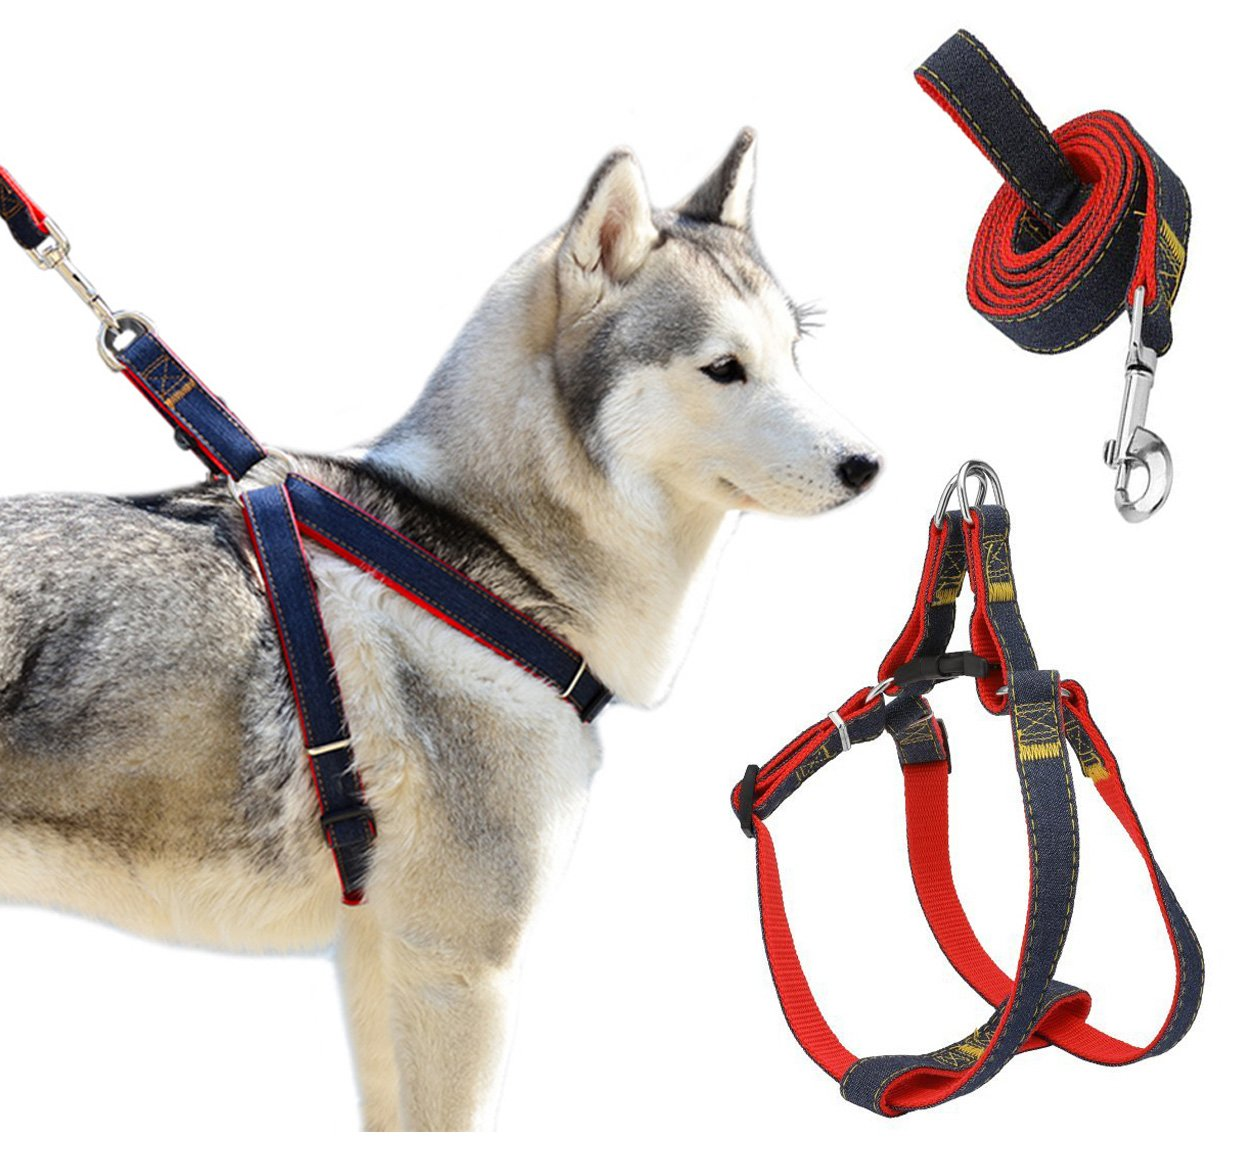 Red L 2.5cm red L 2.5cm Triumilynn Dog Leash Harness Set, Adjustable & Durable Leash & Heavy Duty Dog Cat Leashes for Small Medium Pet for Walking